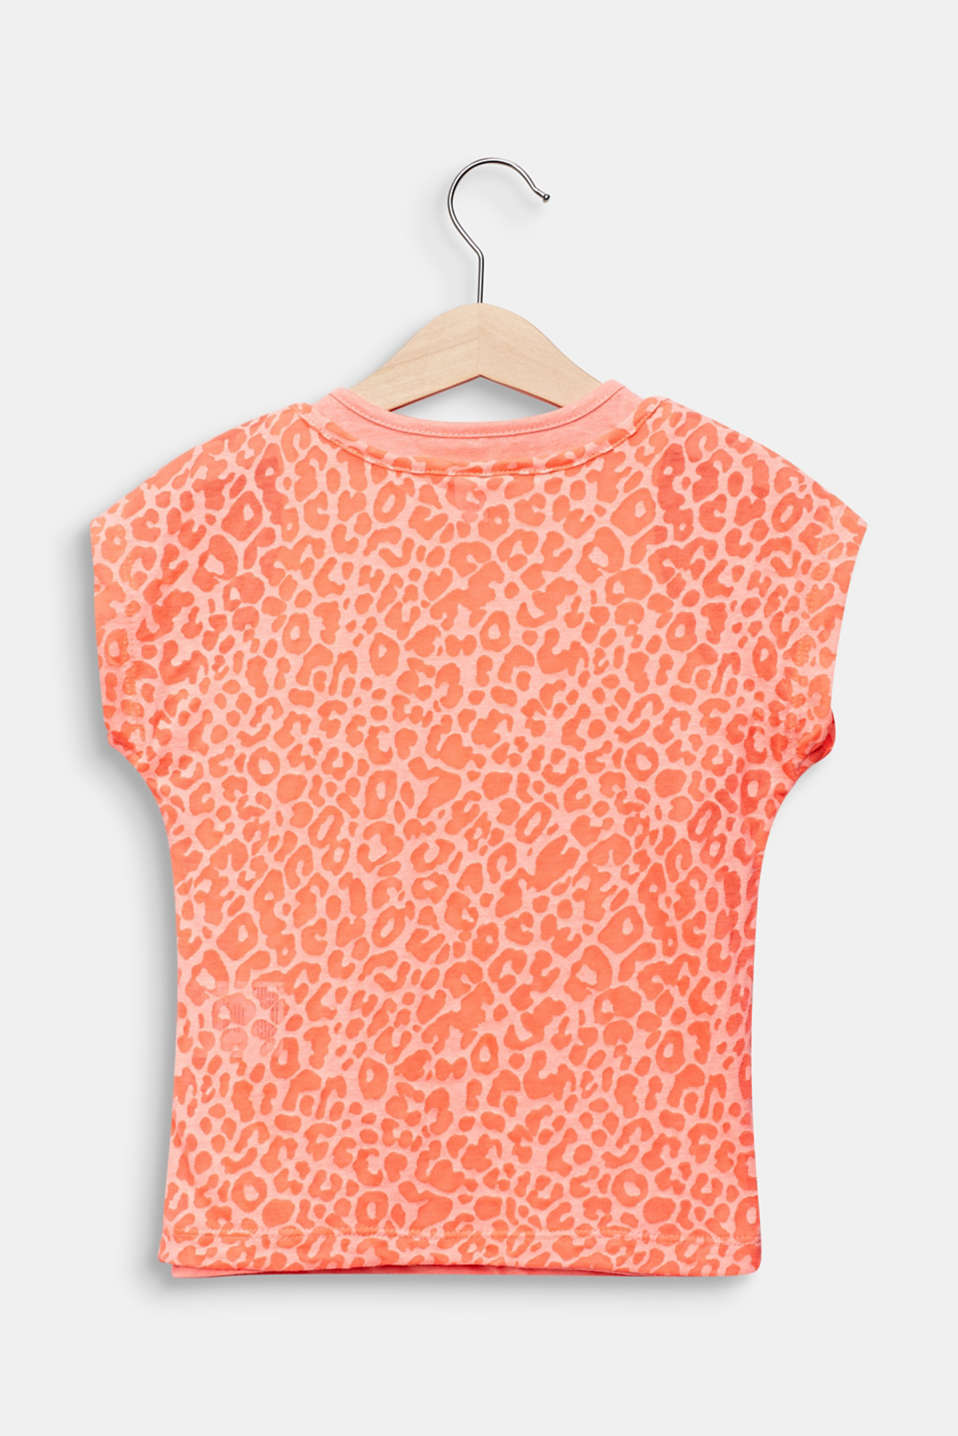 2-in-1 NEON T-shirt with leopard print, NEON CORAL, detail image number 1